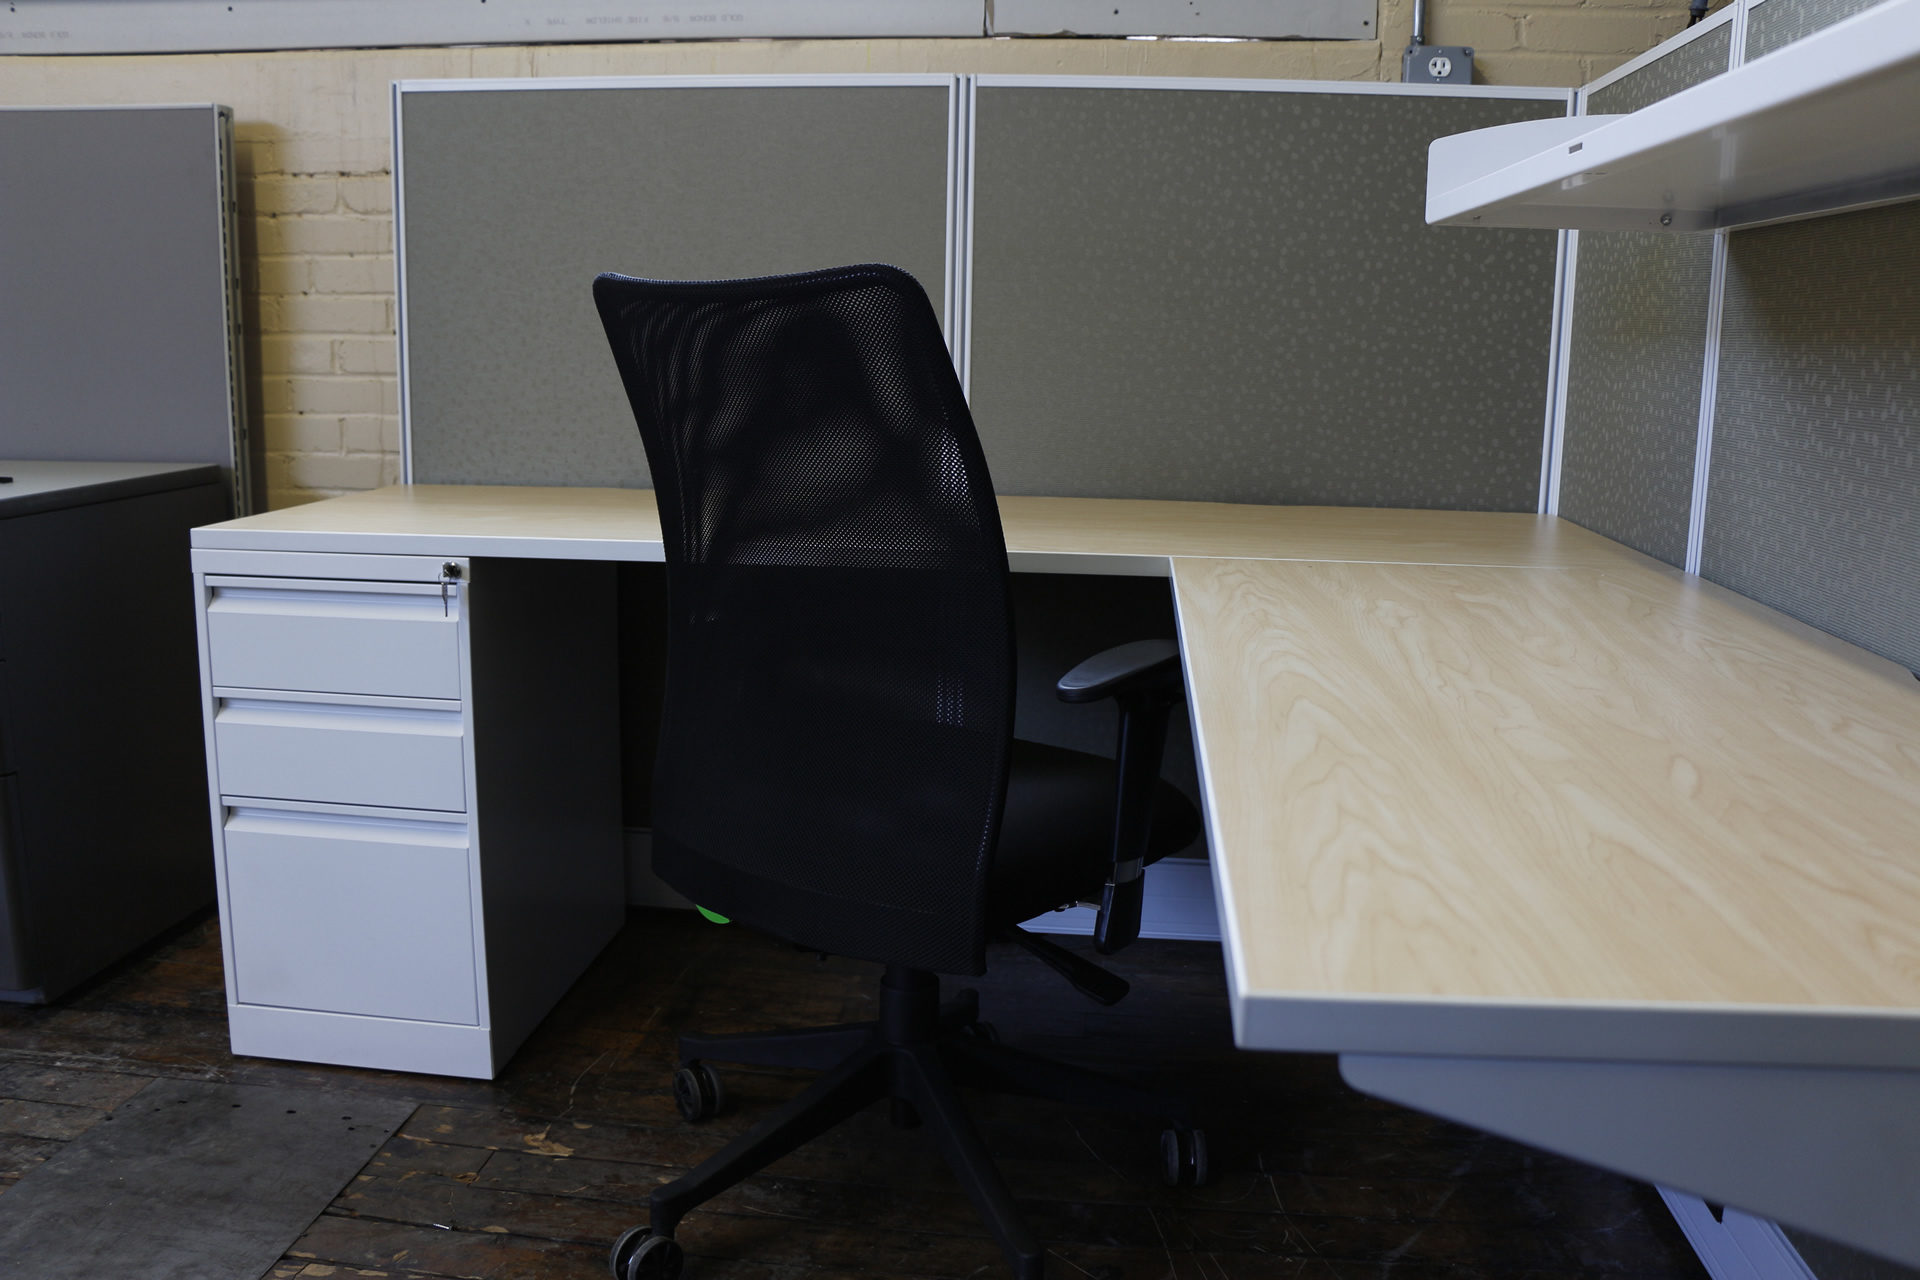 peartreeofficefurniture_peartreeofficefurniture_mg_5115.jpg